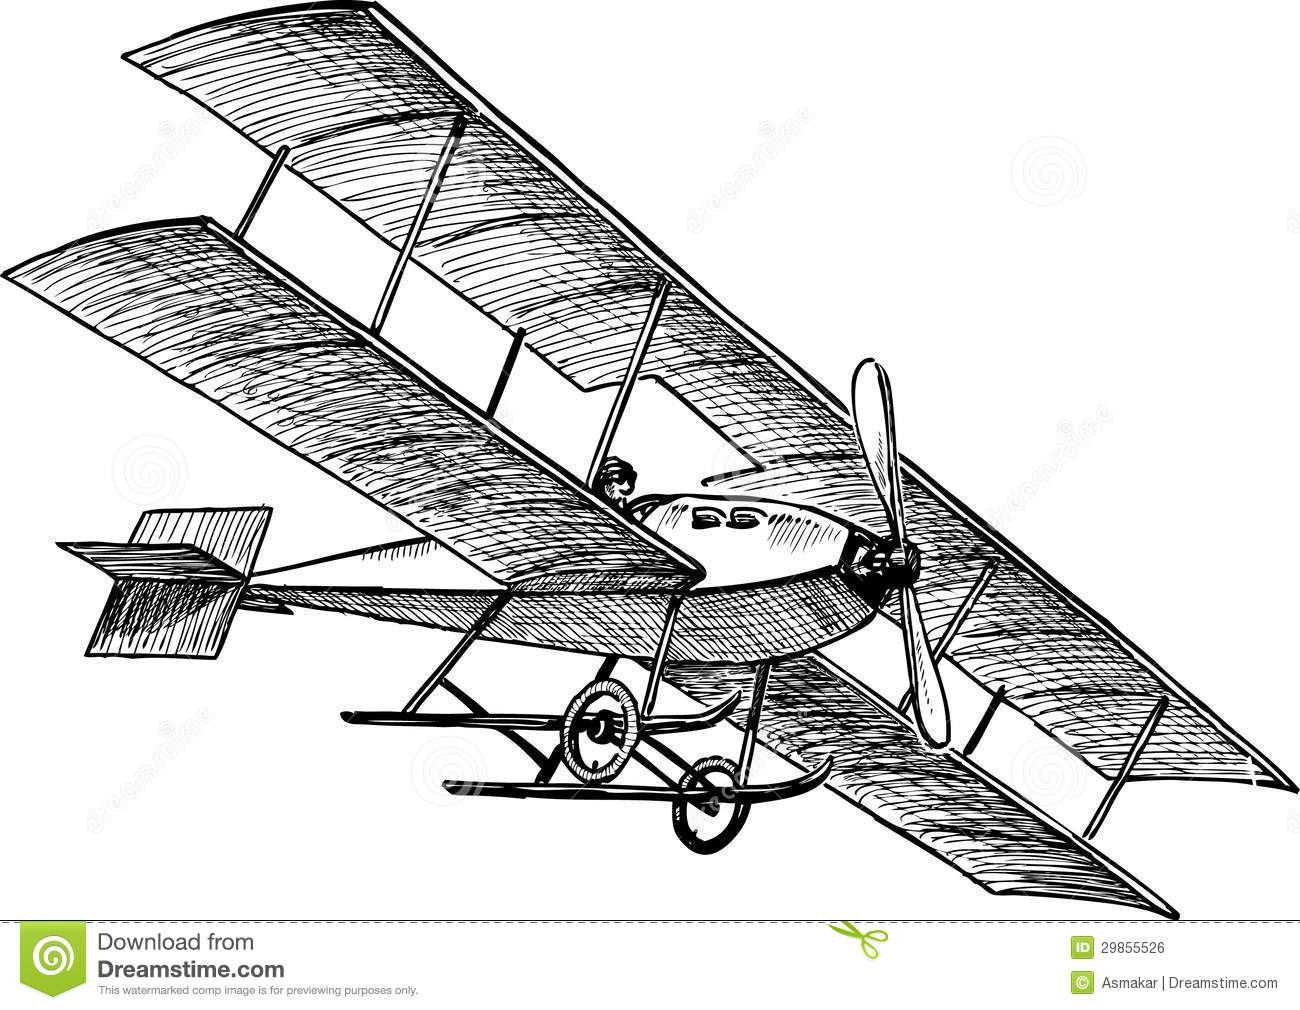 Avion antique image libre de droits image 29855526 - Dessins avions ...